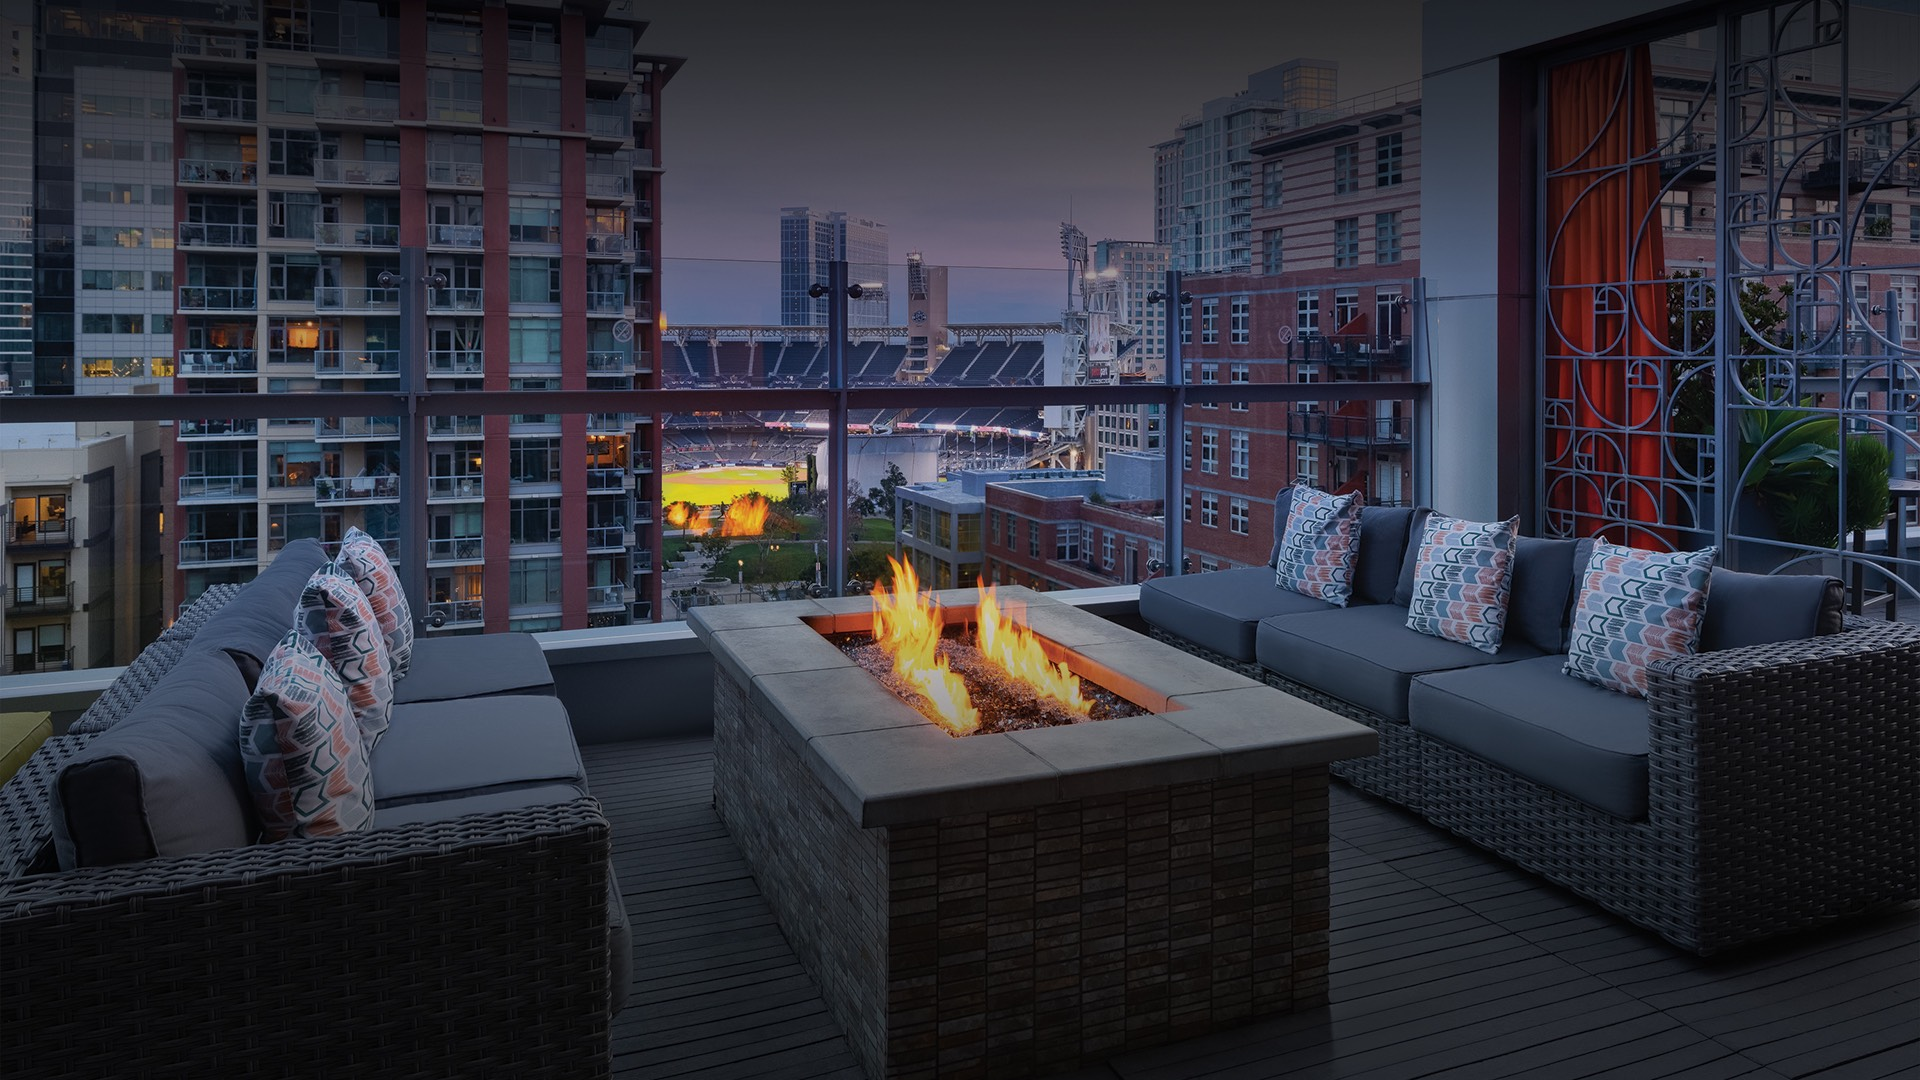 rooftop lounge area with fireplace